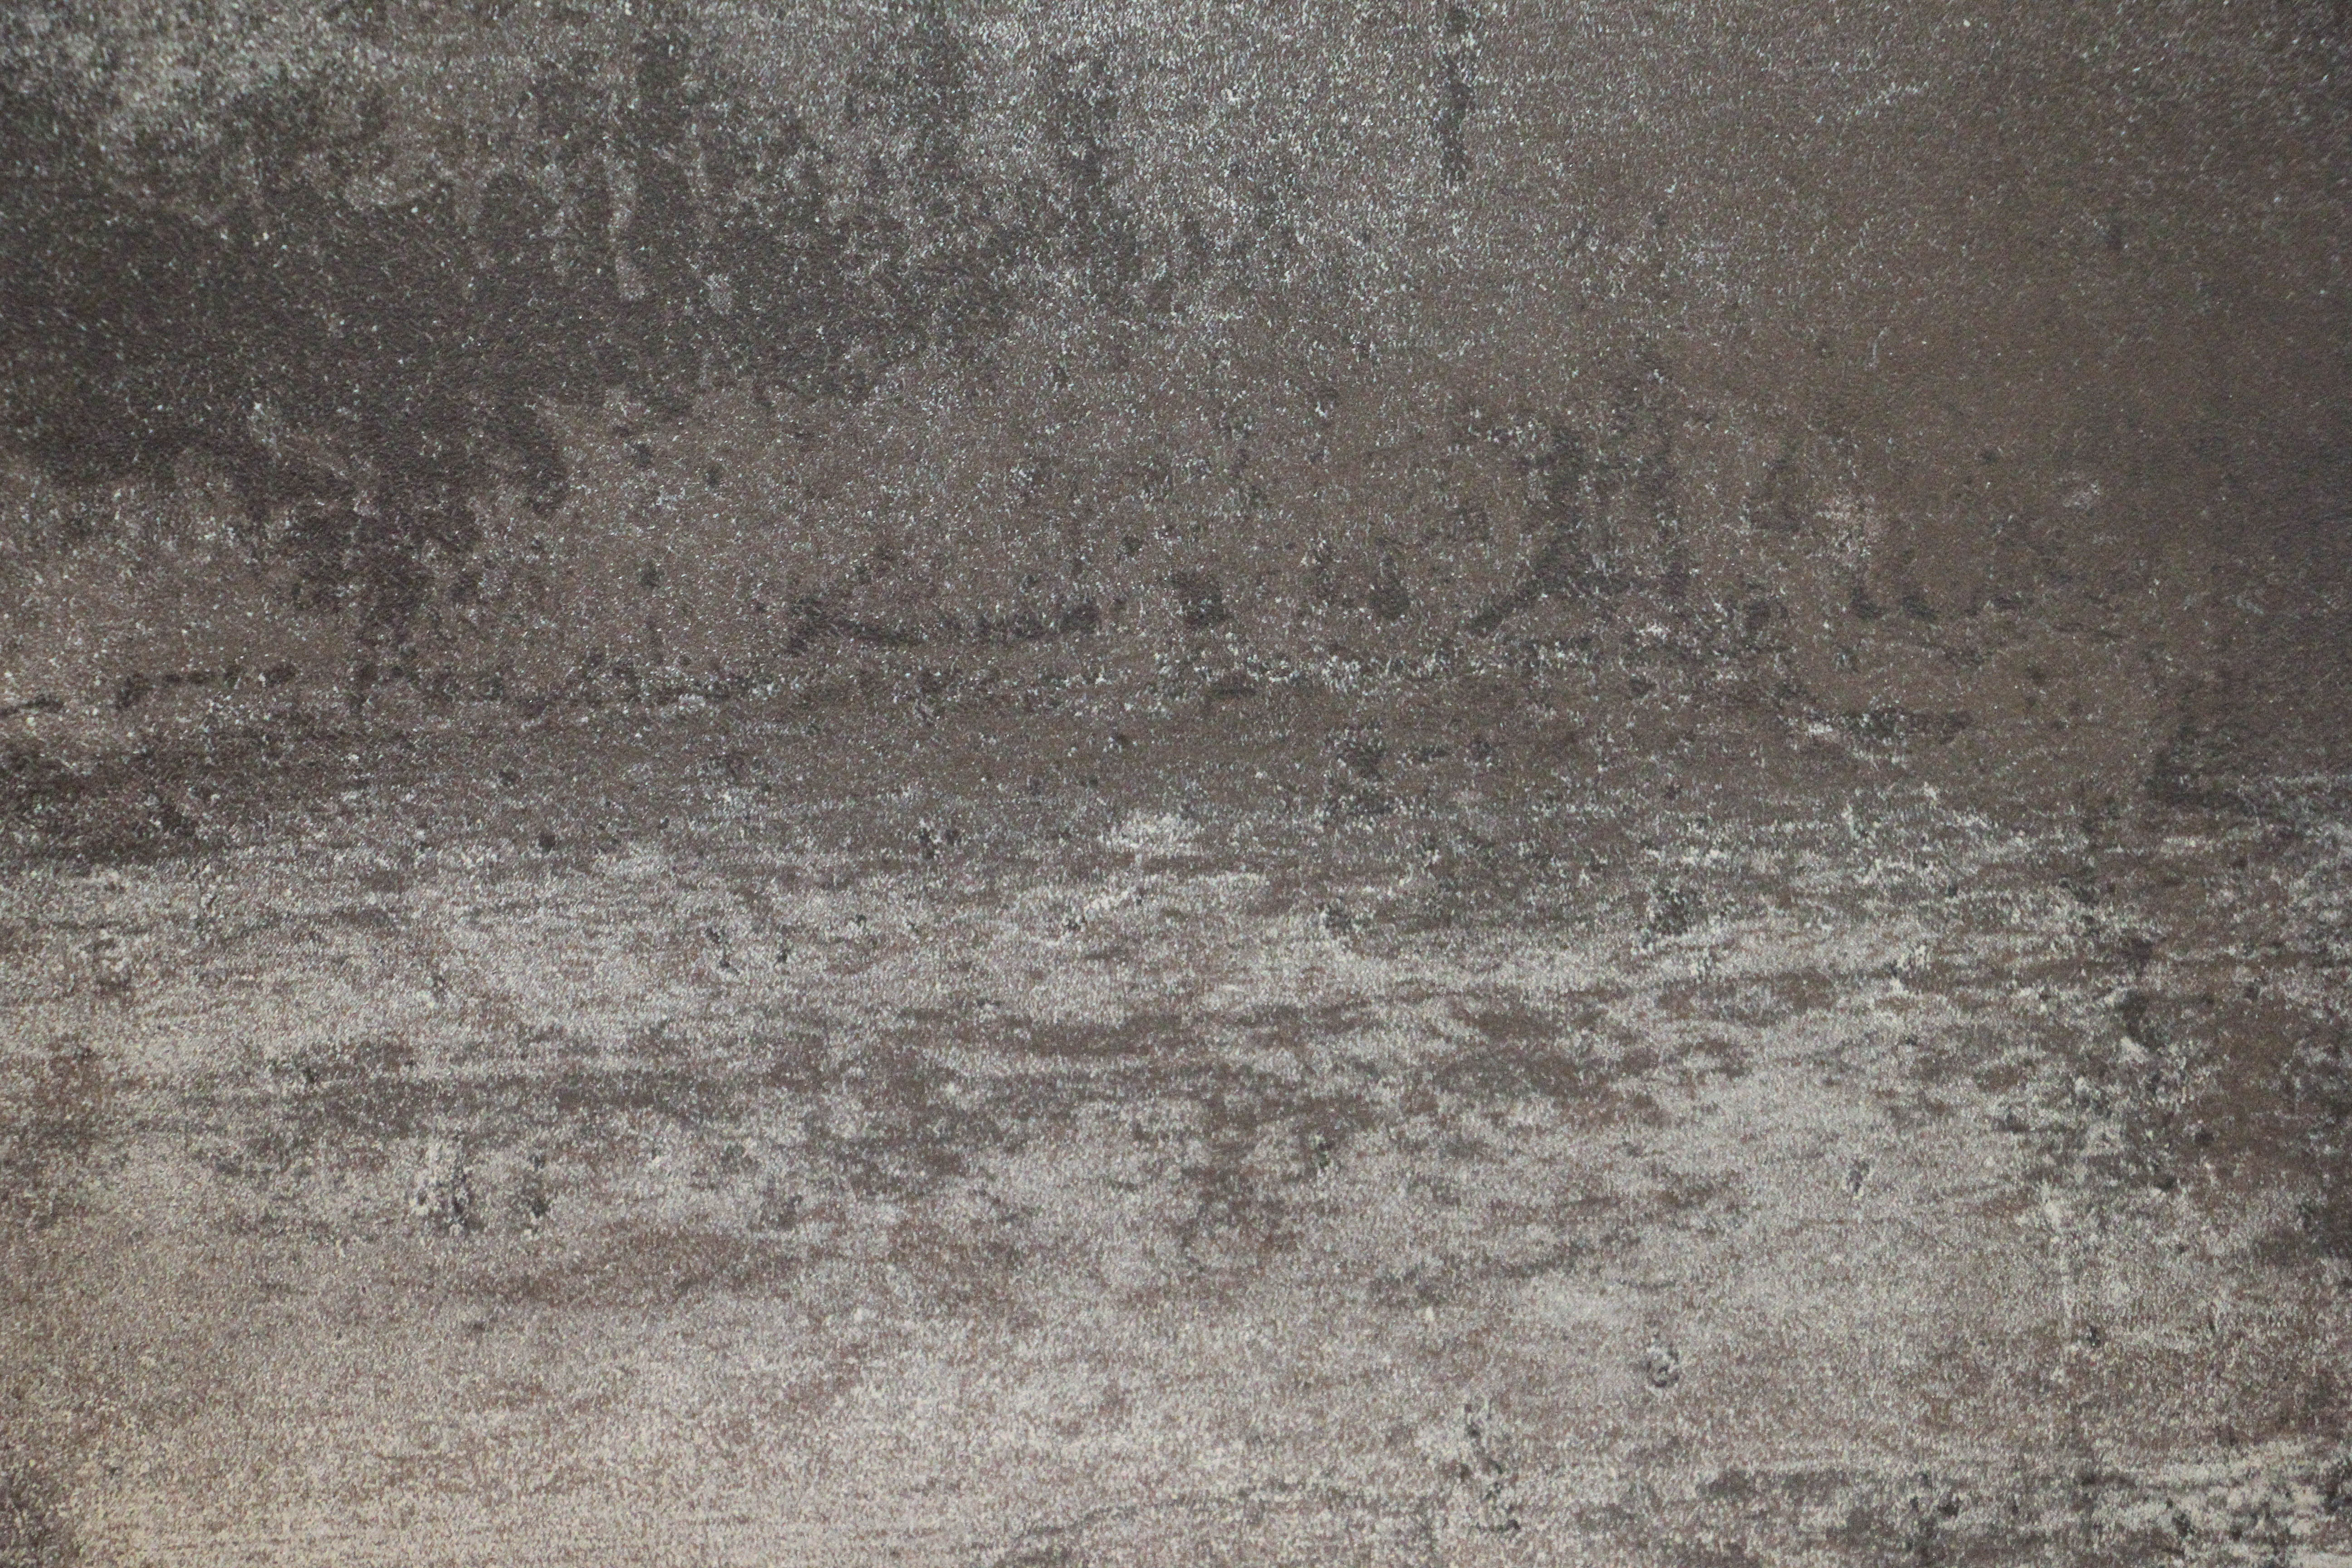 Grunge Textures Archives Page 9 Of 14 Texturex Free